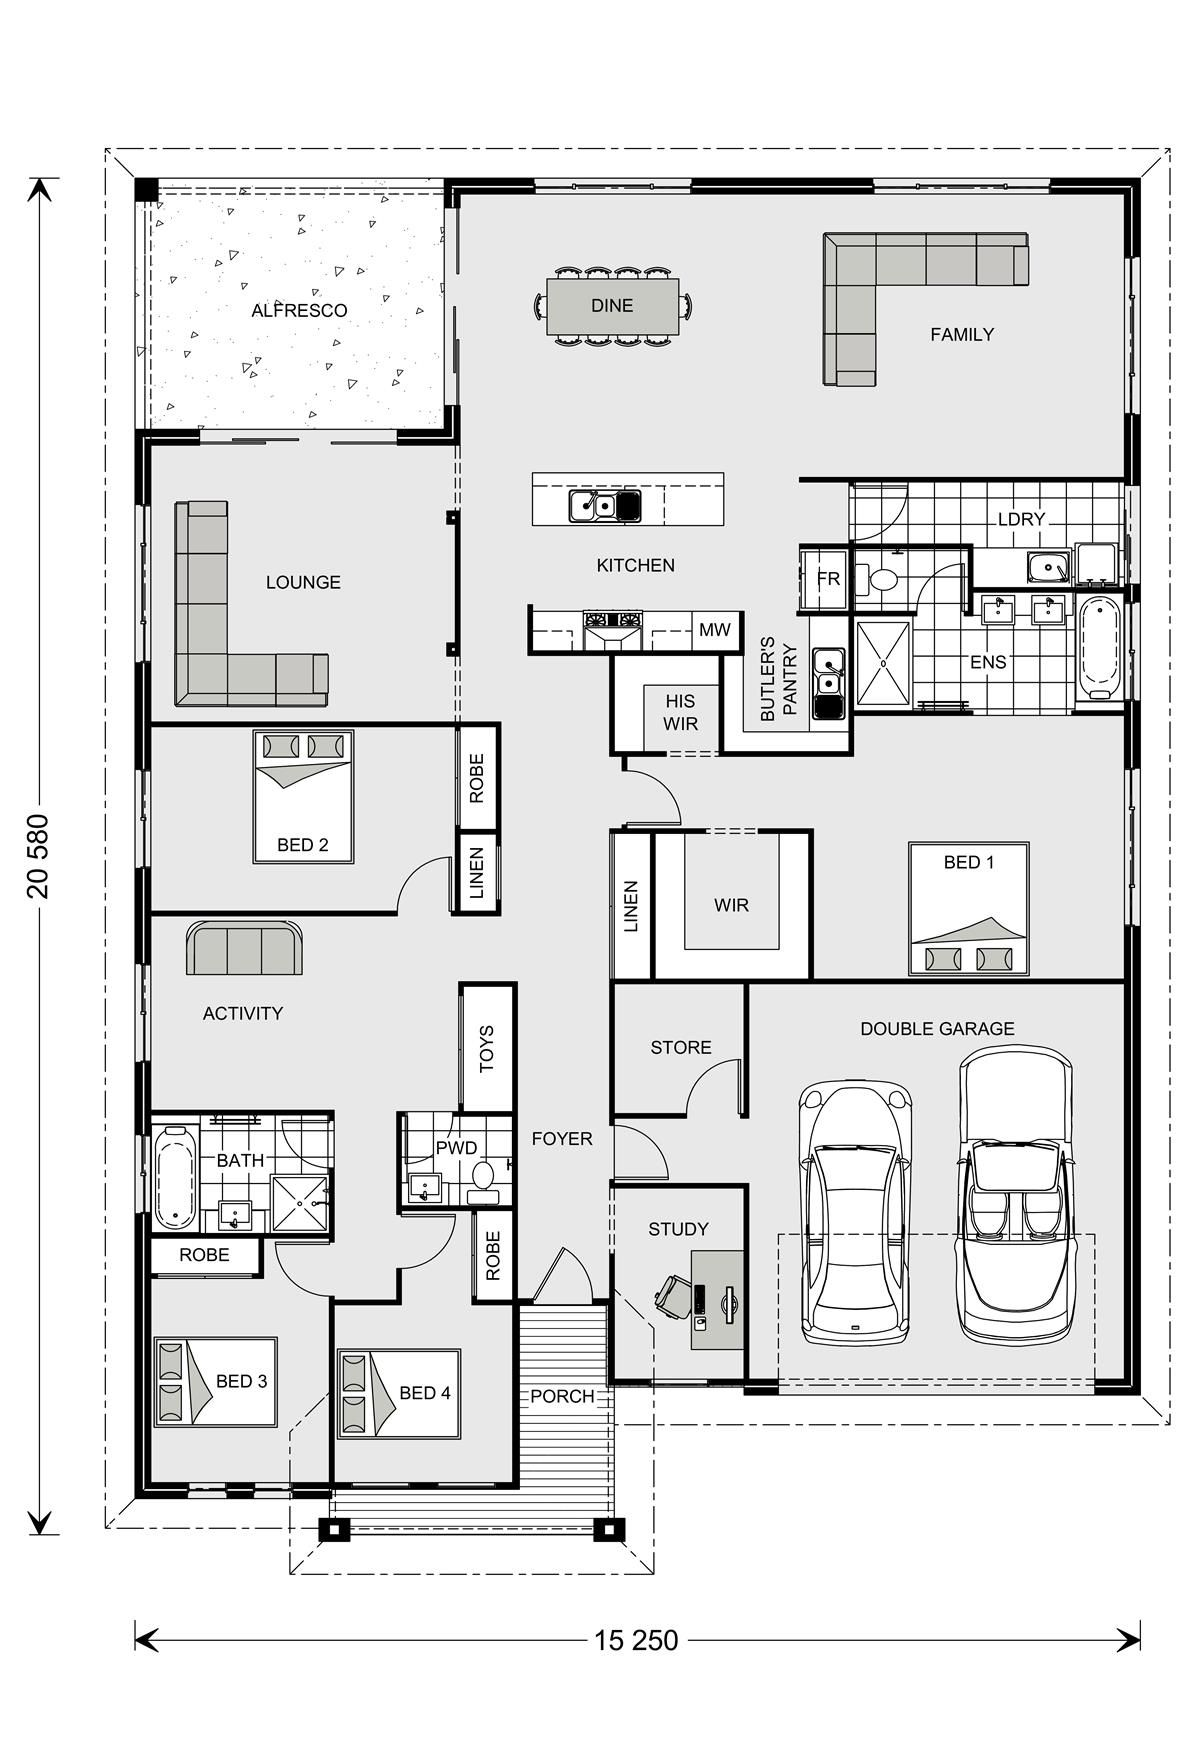 Pin By Brita On House Plan Home Design Floor Plans Floor Plan Layout How To Plan